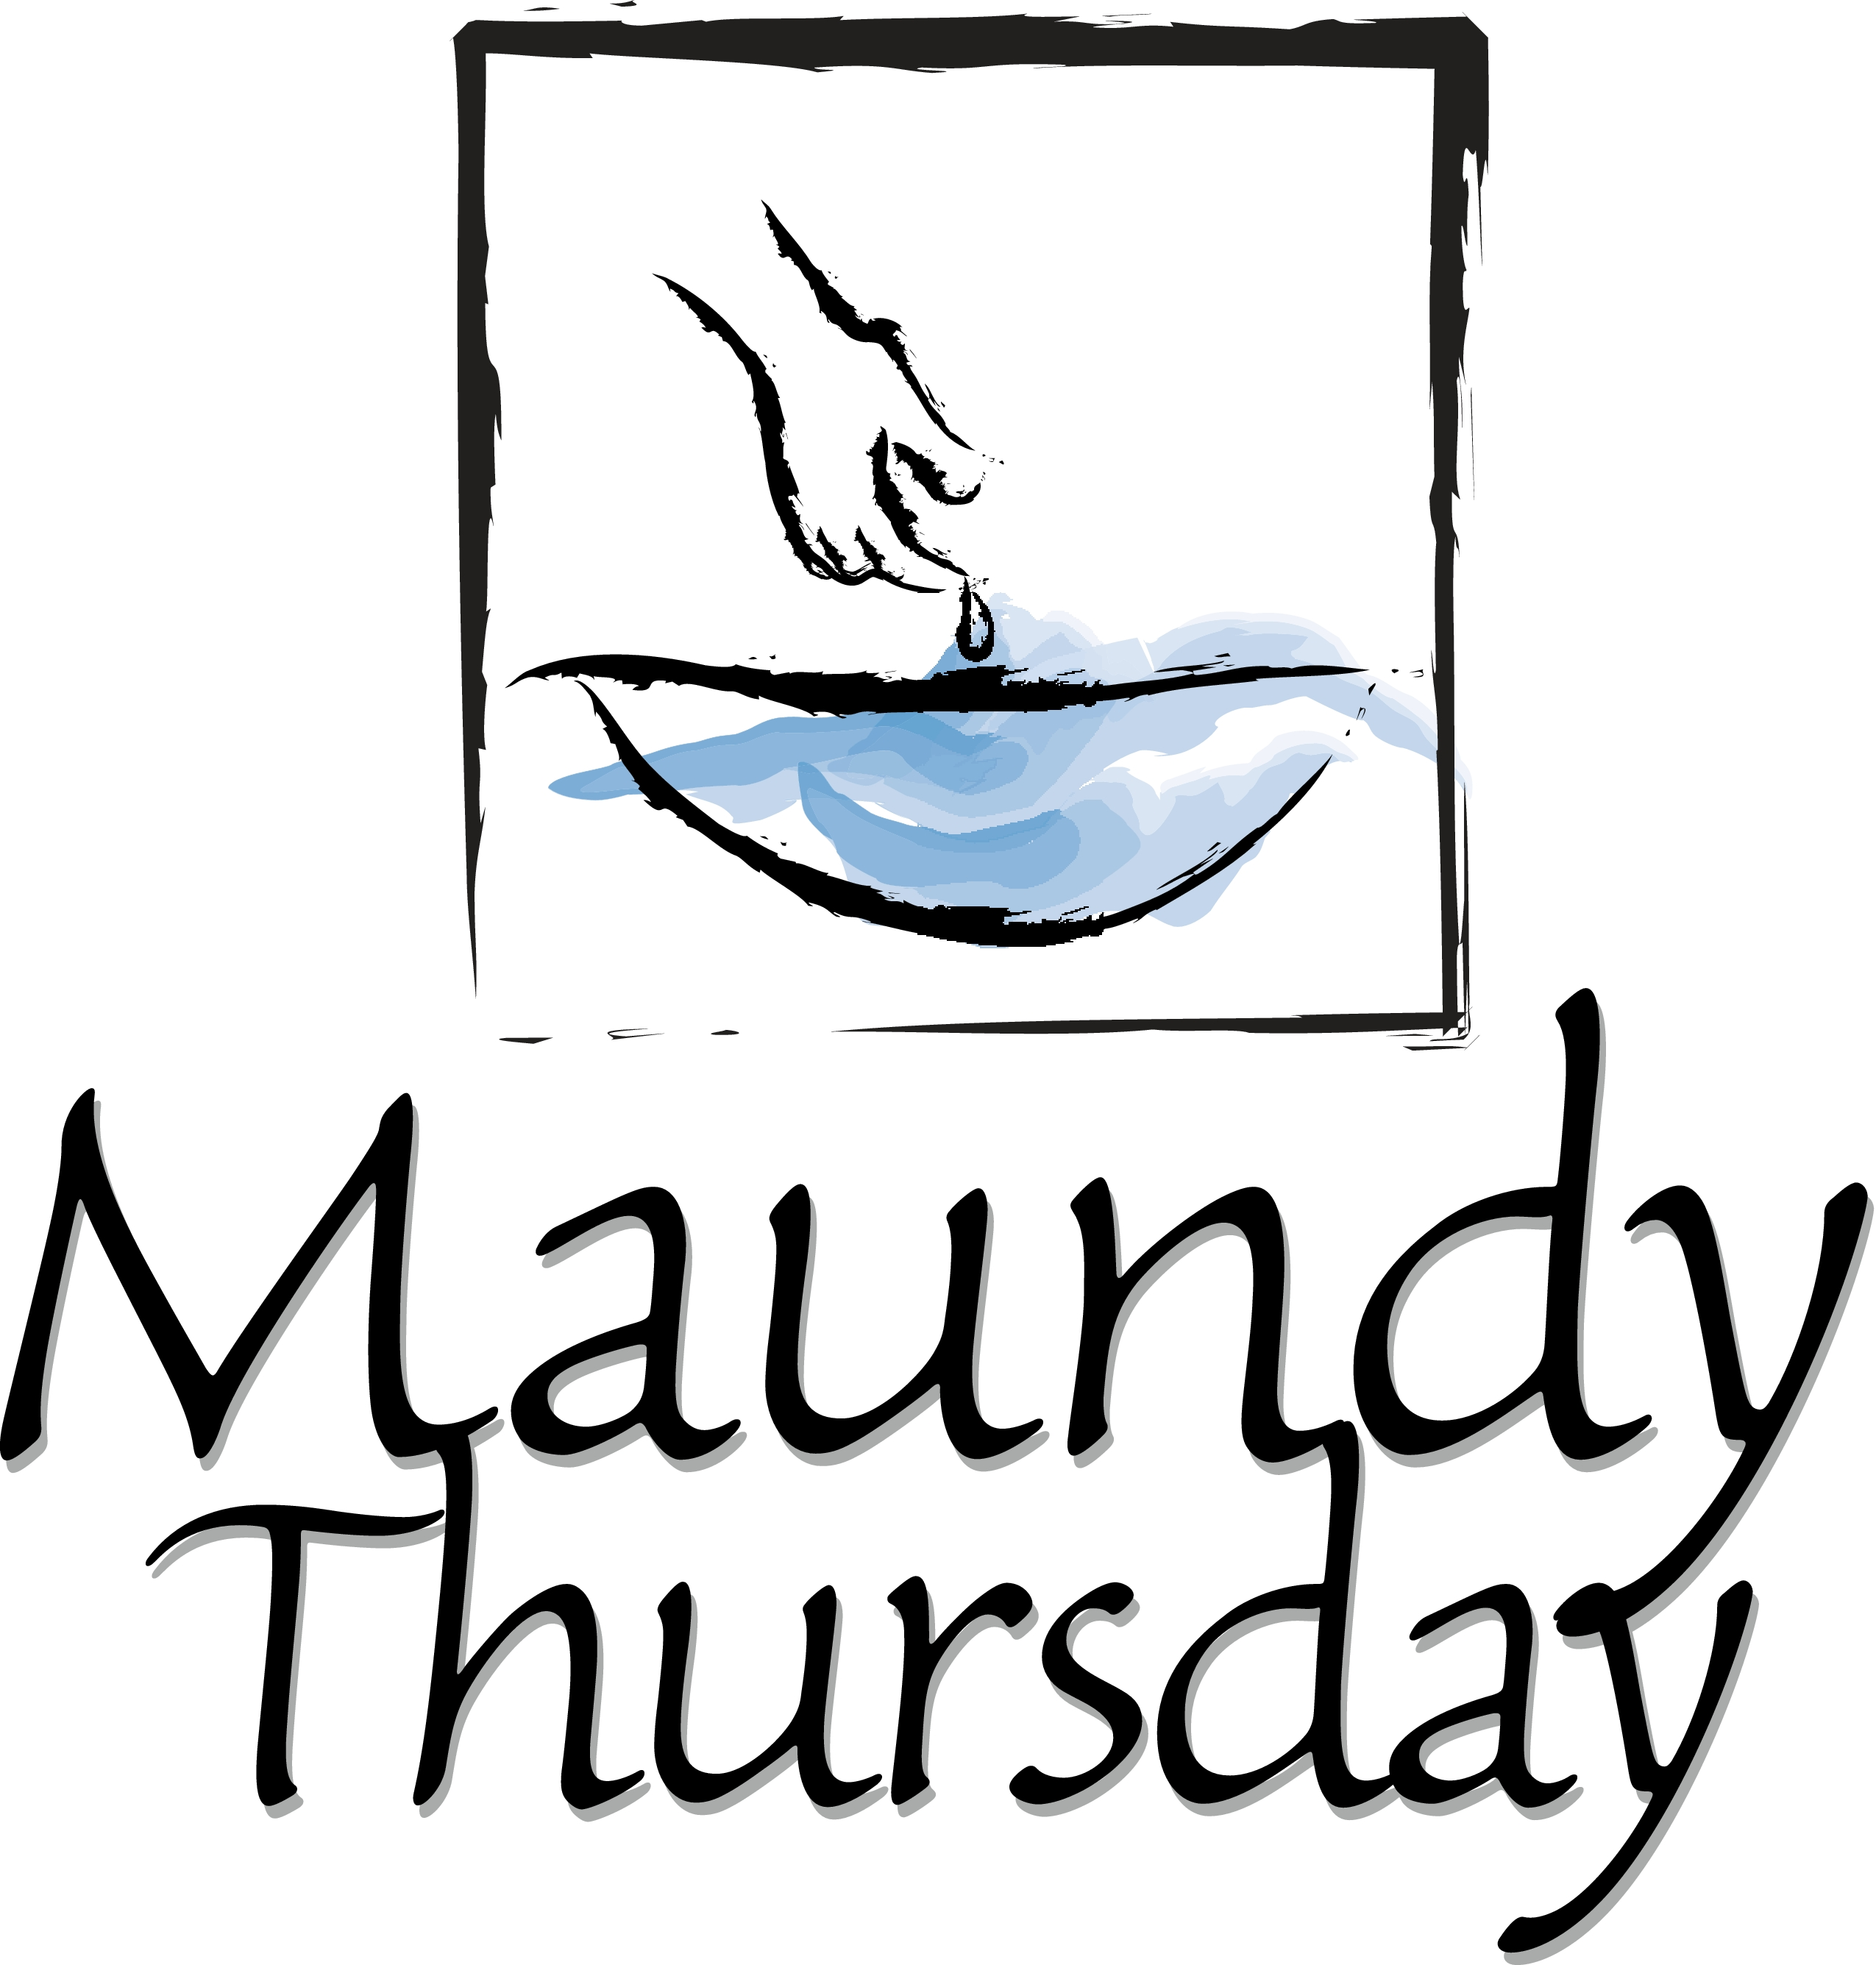 Maundy Thursday Clipart Free - ClipArt Best